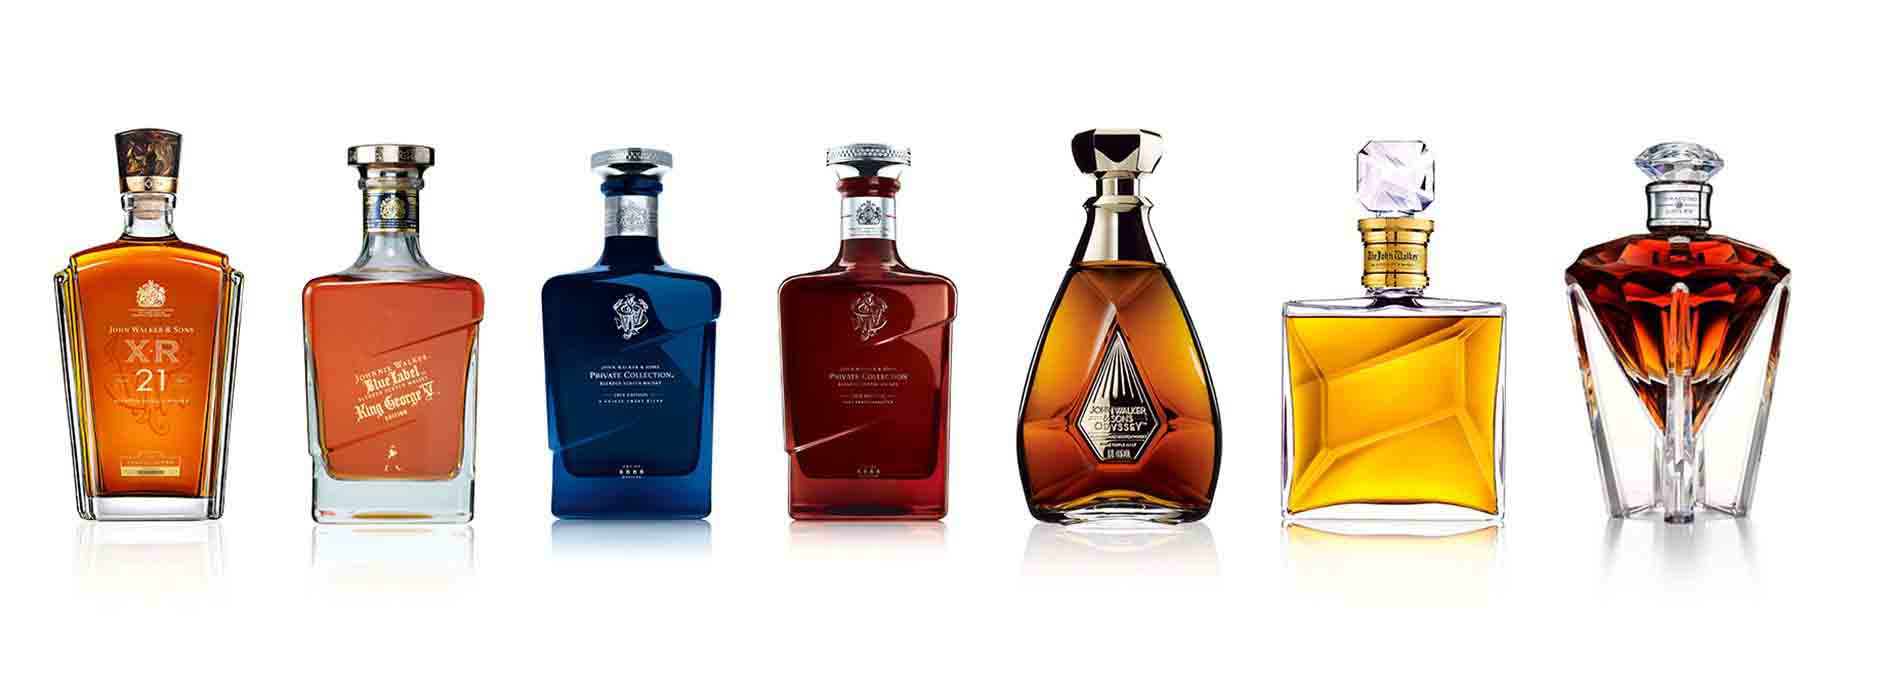 Flessen John Walker & Sons whisky-assortiment